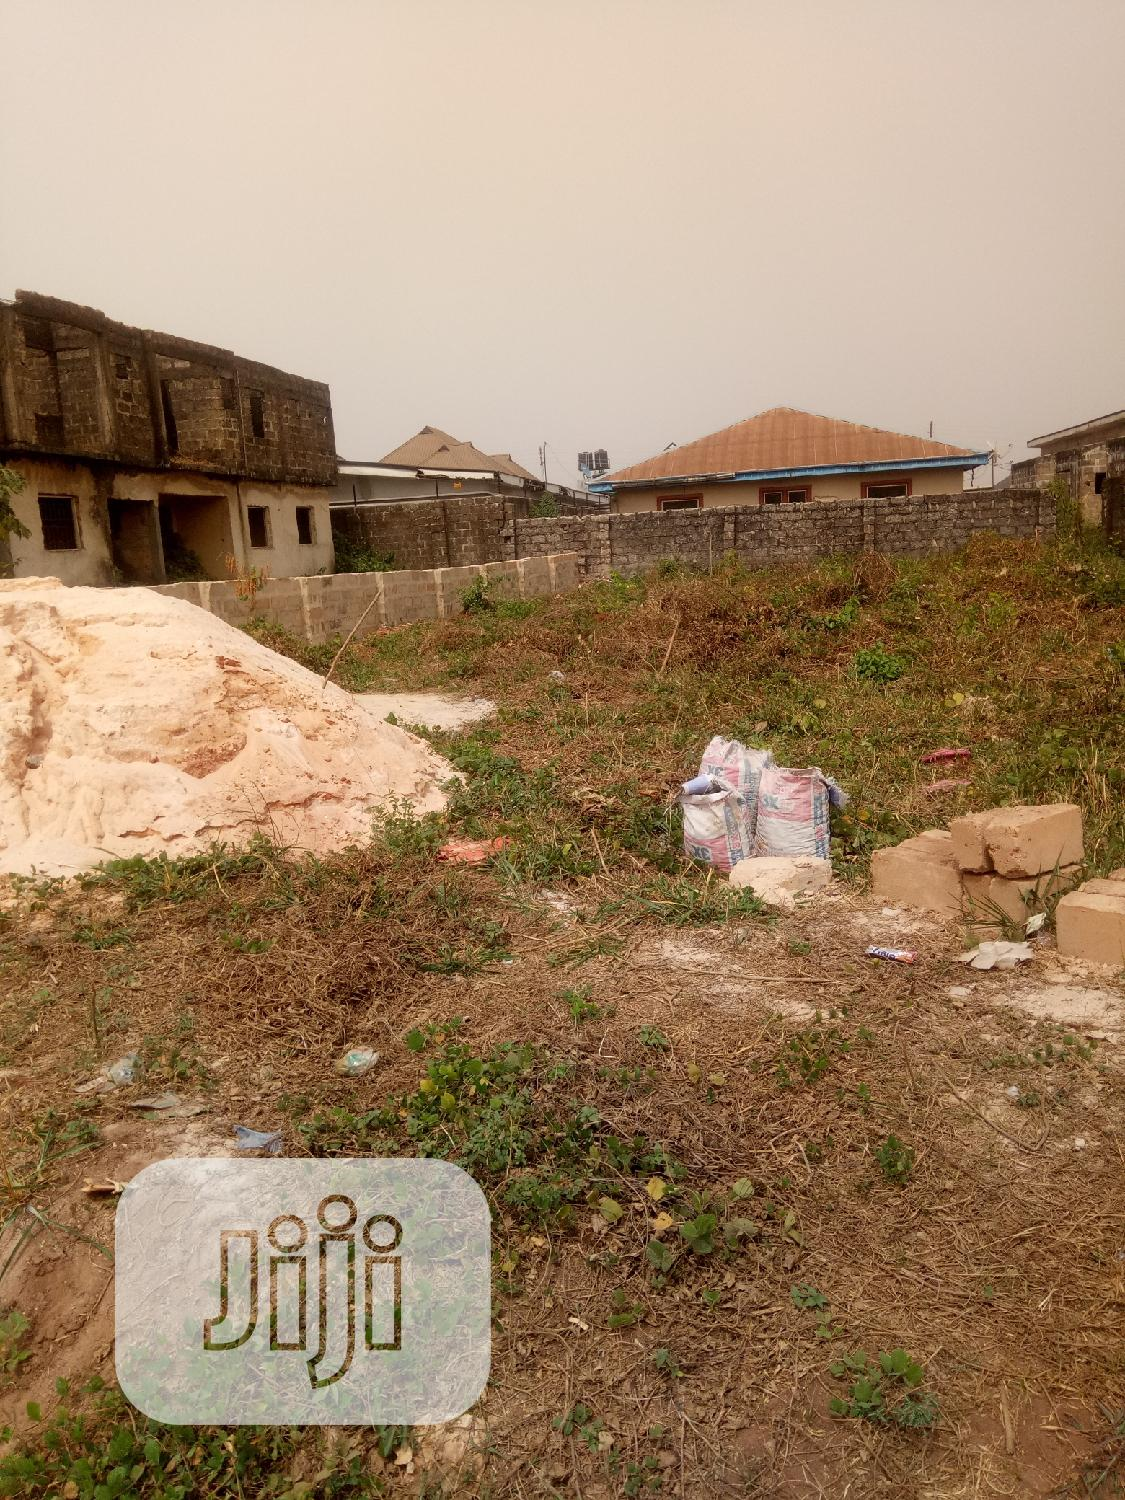 Archive: Nice and Genuine Plot of Land Measuring 50X110FT for Urgent Sale